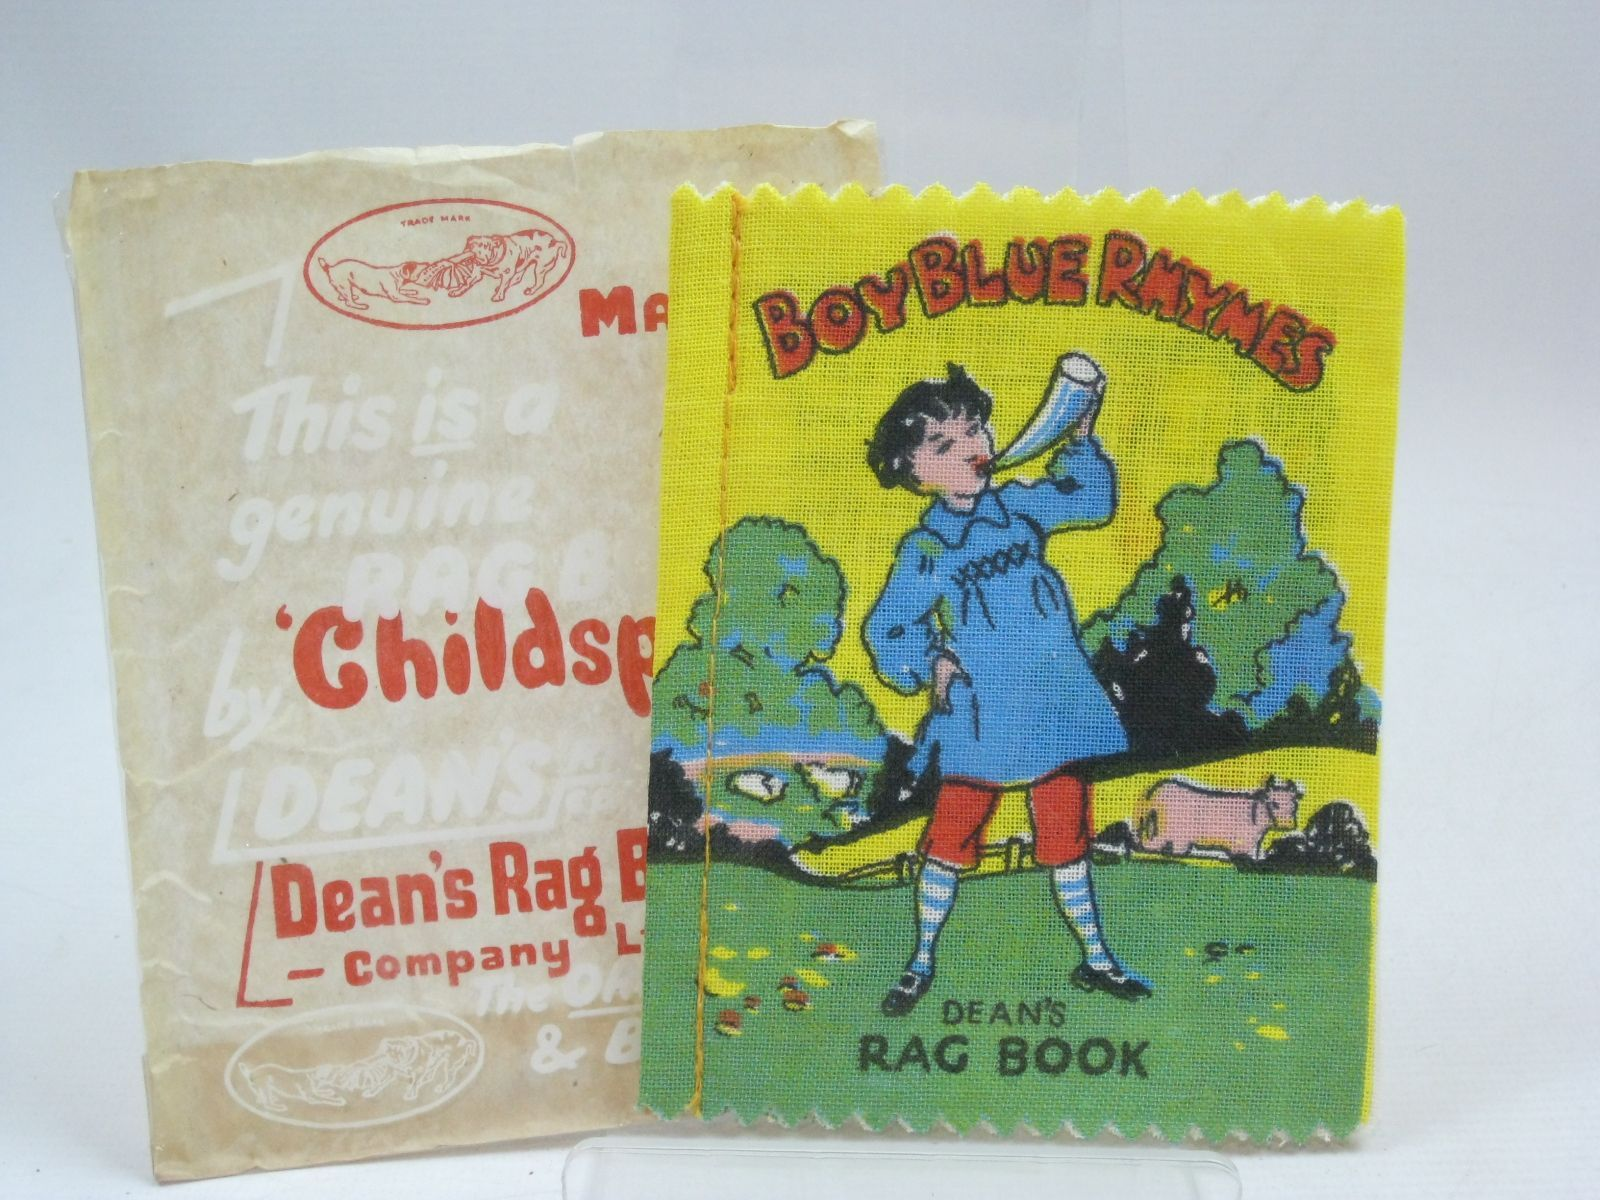 Photo of BOY BLUE RHYMES published by Dean's Rag Book Co. Ltd. (STOCK CODE: 1405805)  for sale by Stella & Rose's Books